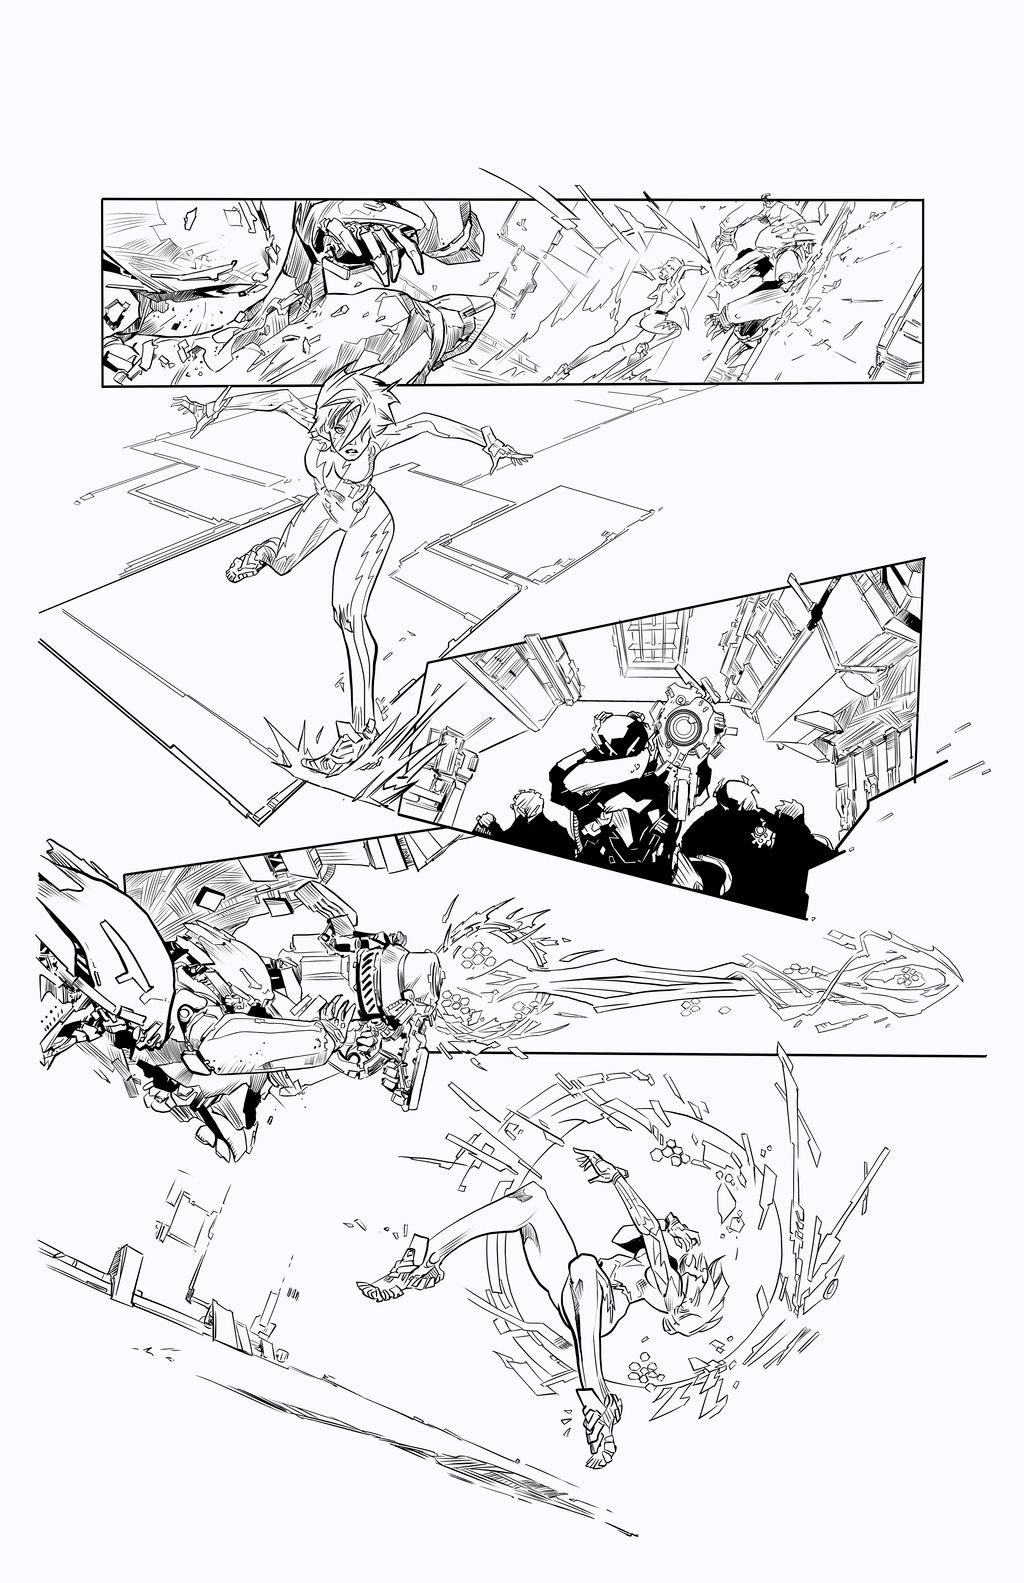 Matt james velocity issue1 page4 kenrocafort by snakebitartstudio dba4ygx